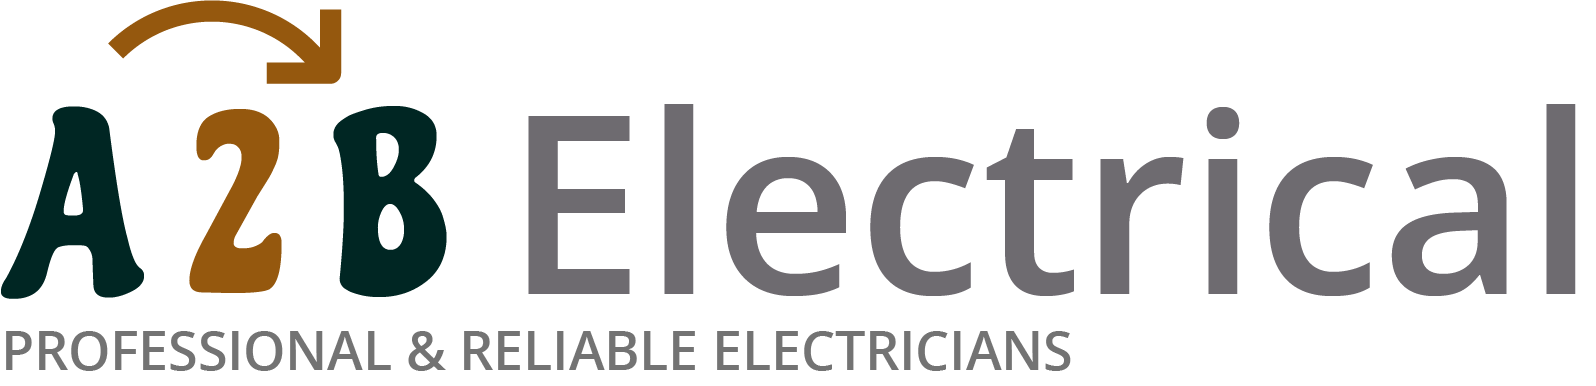 If you have electrical wiring problems in Pinner, we can provide an electrician to have a look for you.